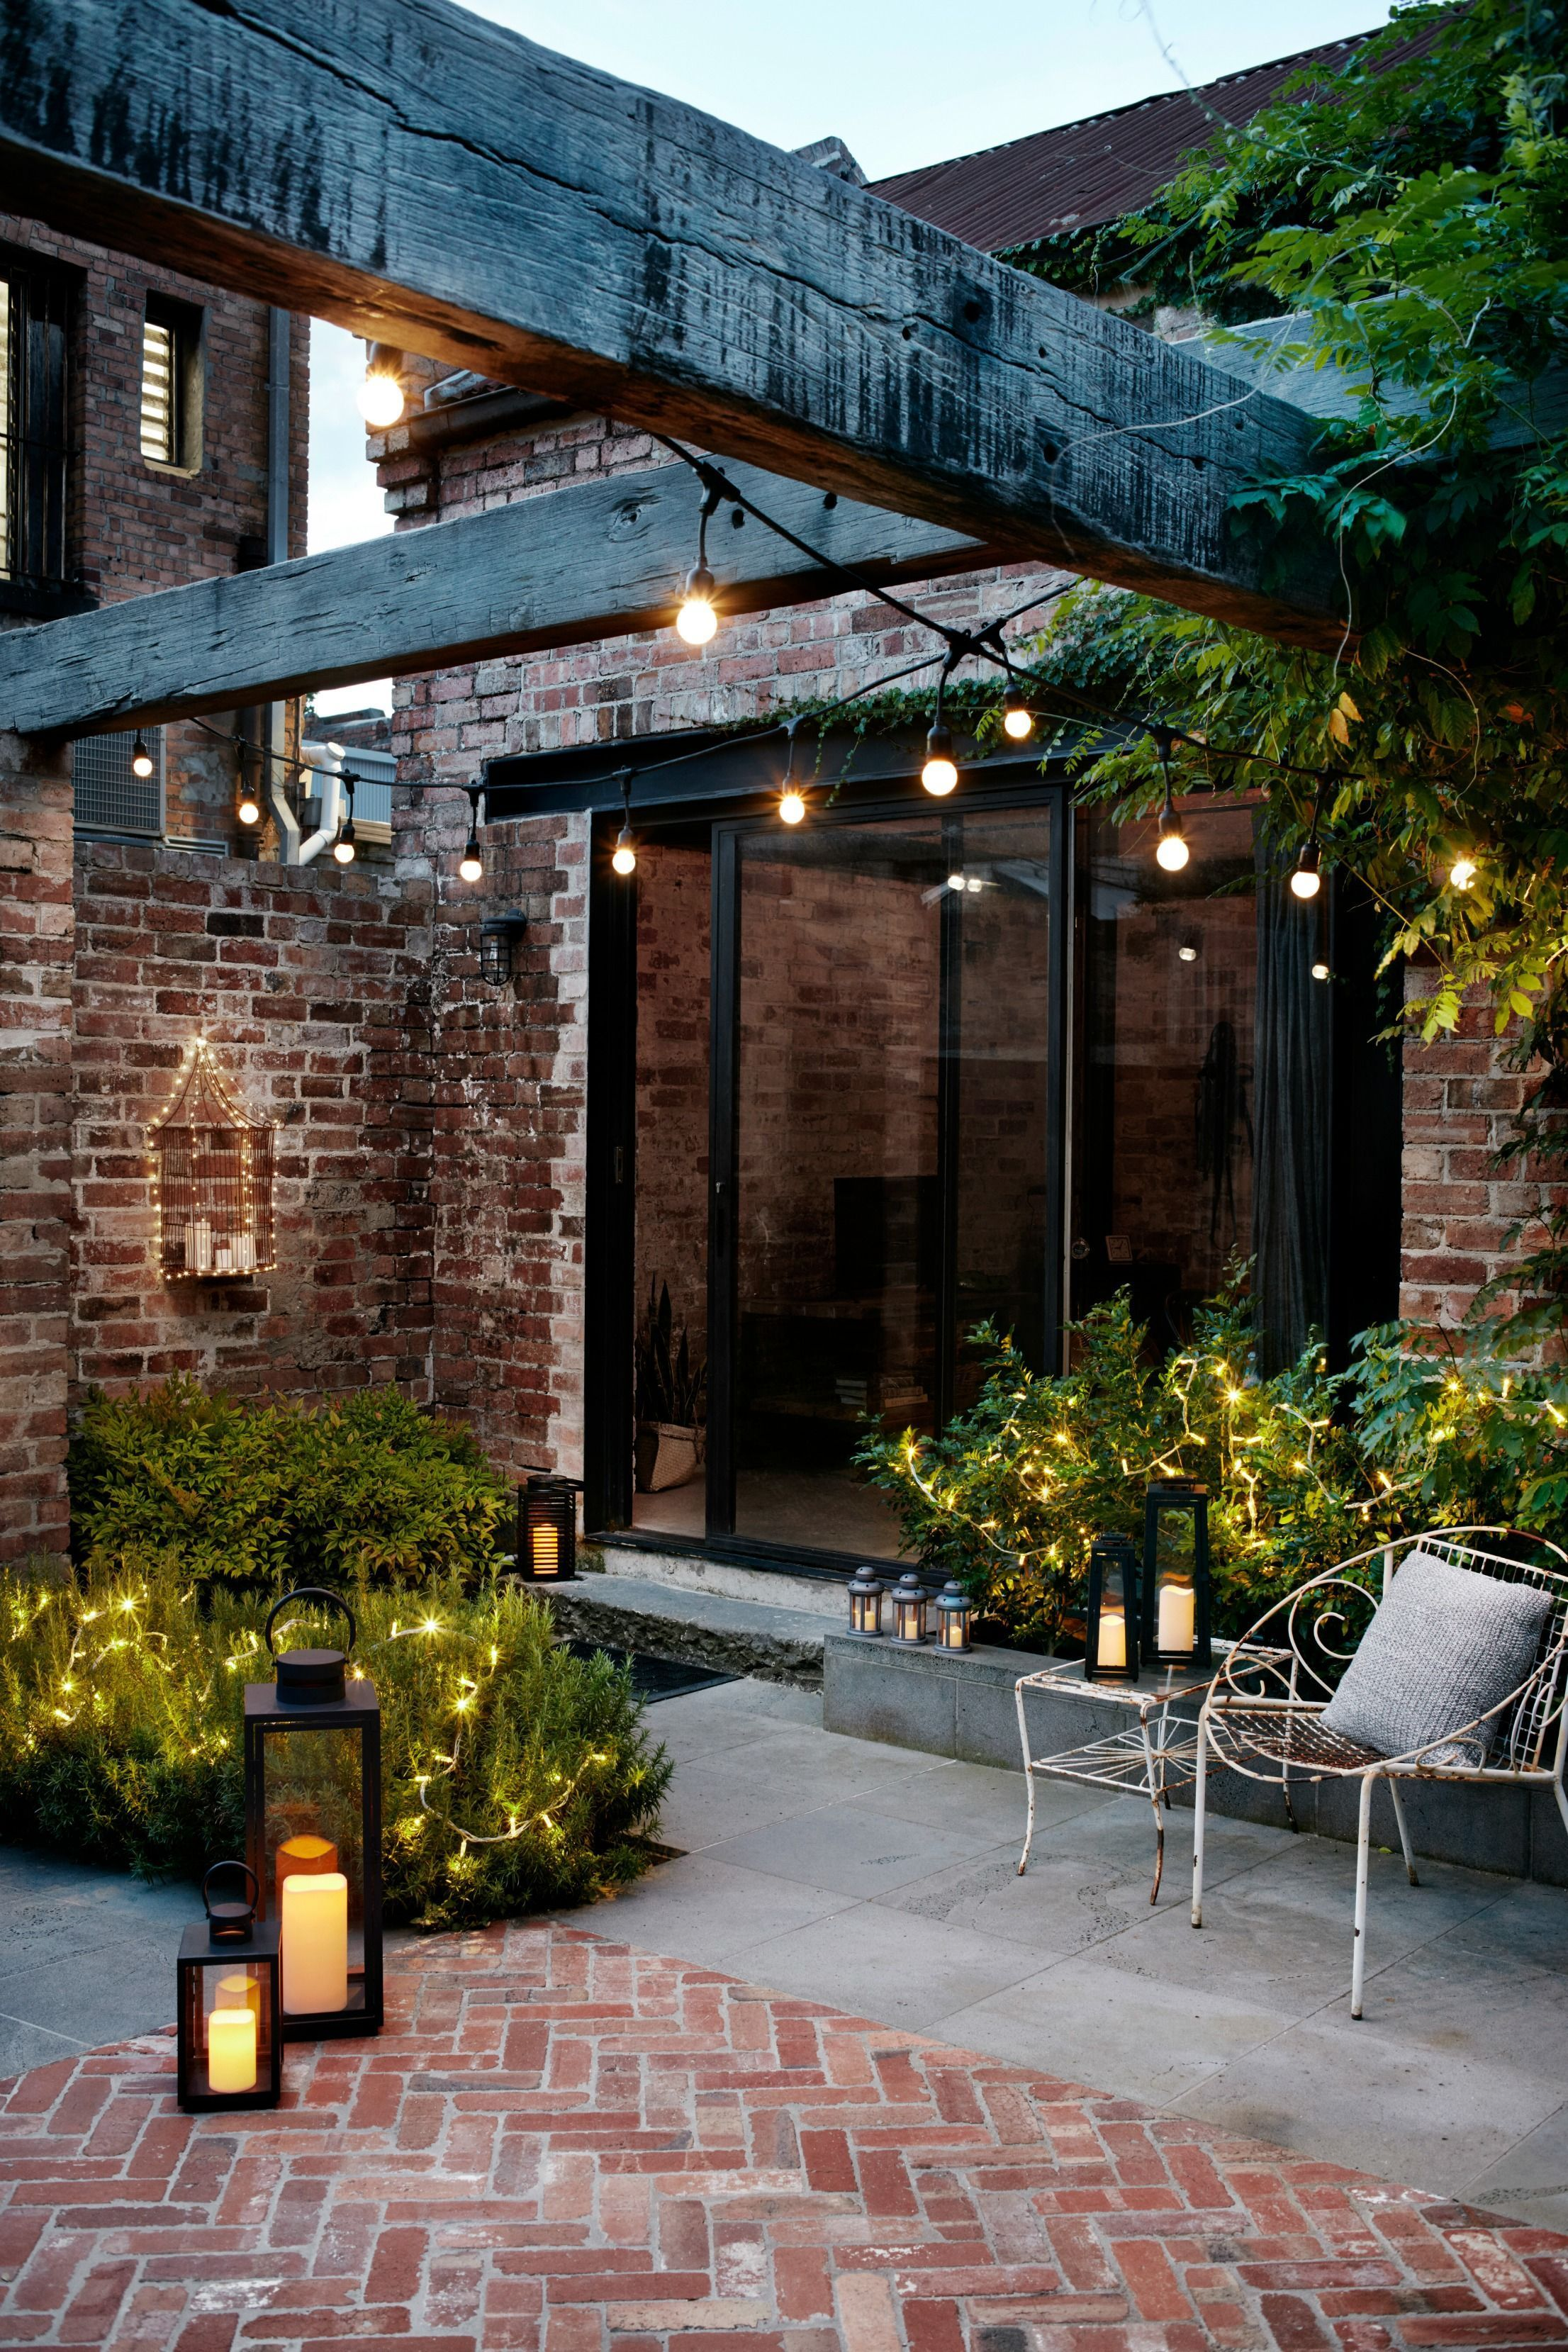 Courtyard gardens are perfectly matched with garden lanterns and festoon lights : festoon lighting sydney - www.canuckmediamonitor.org